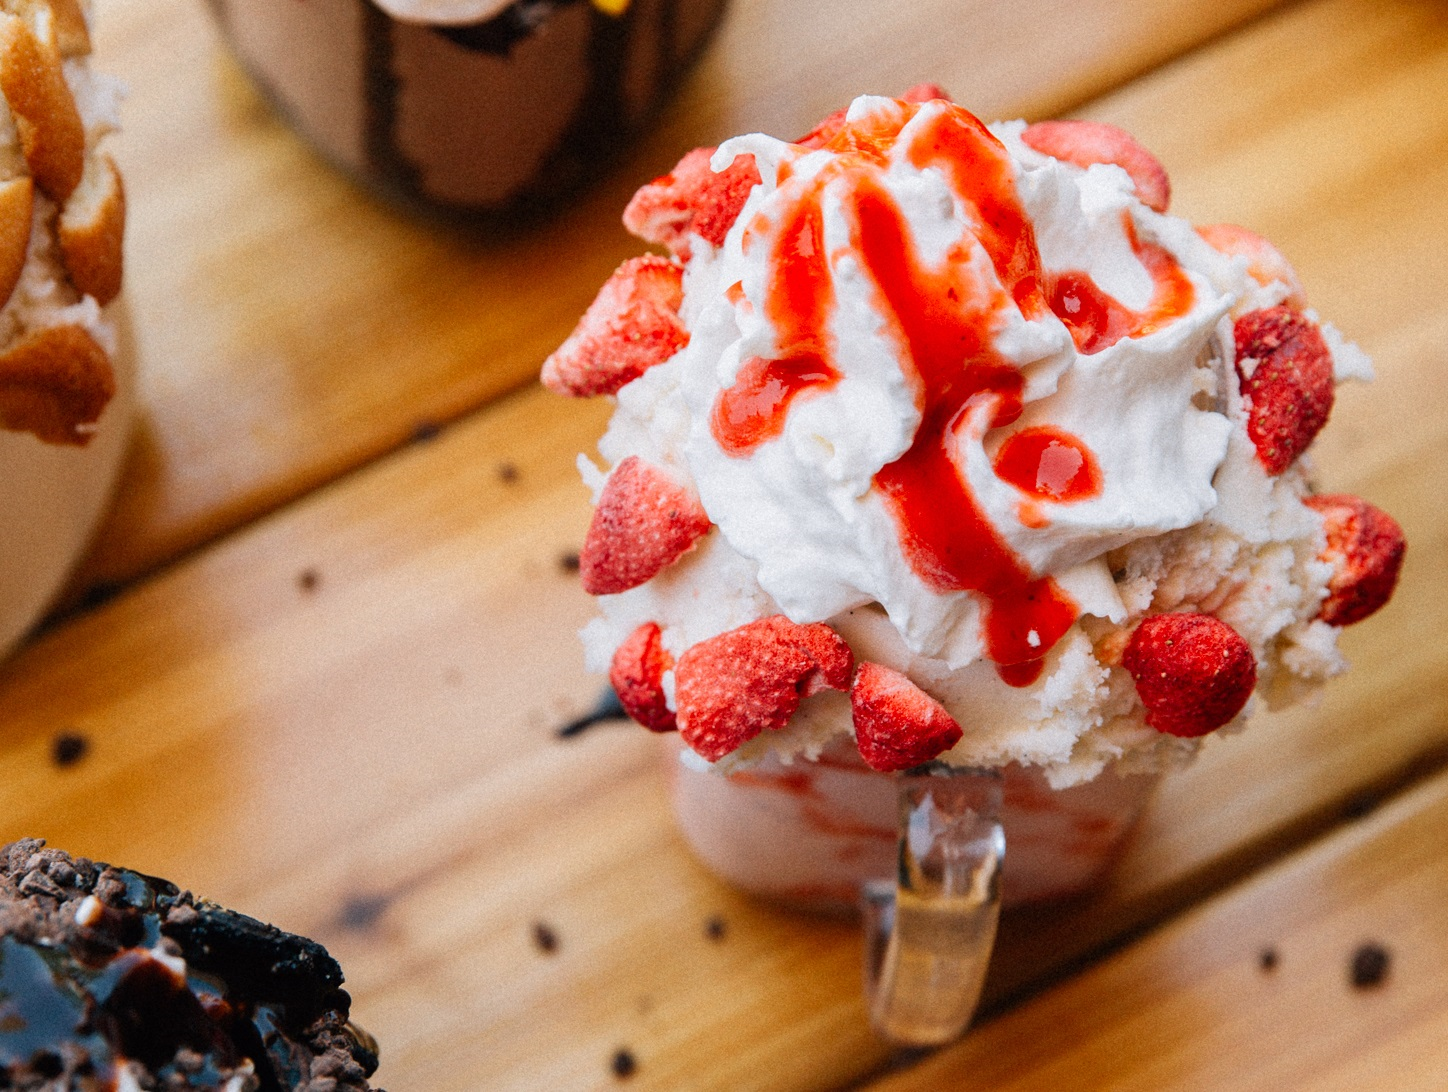 A strawberry milkshake covered in shipped cream and strawberries on top